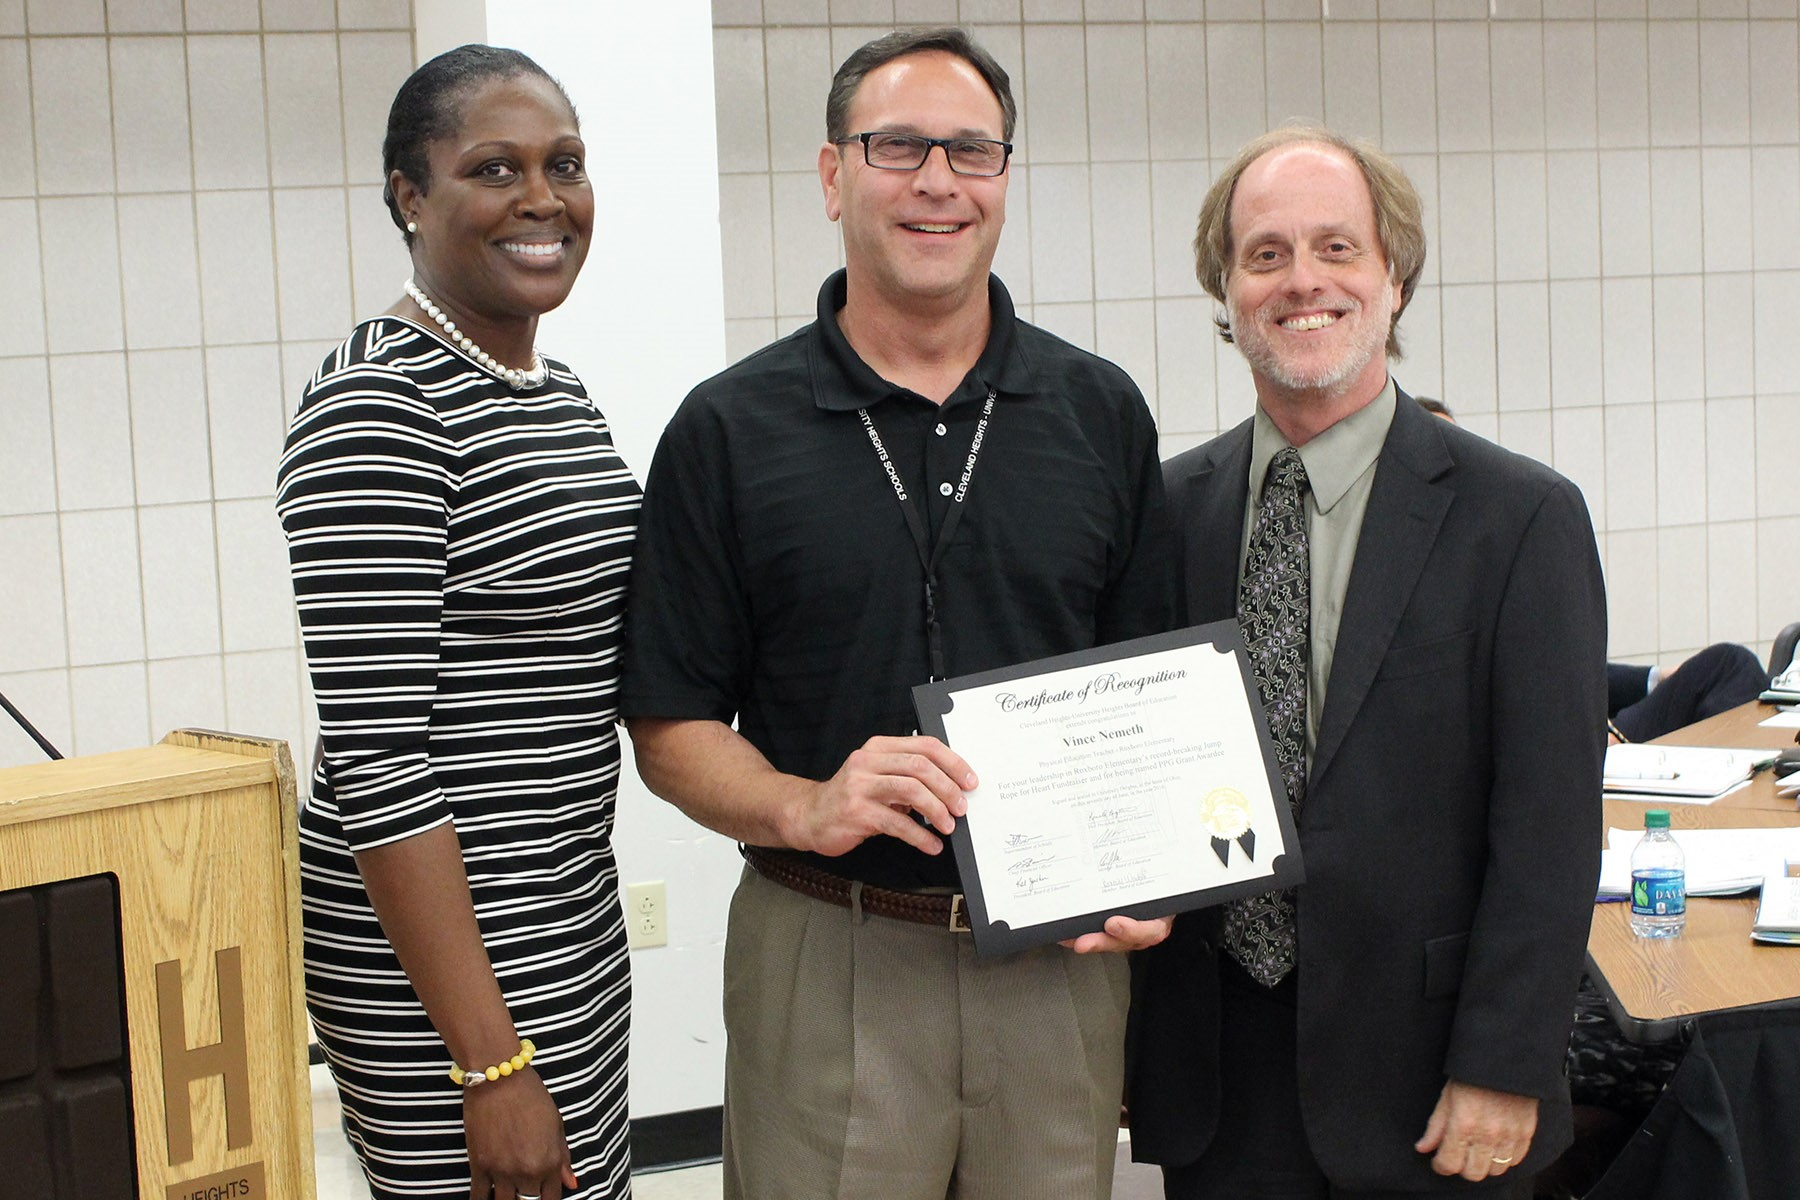 Physical education teacher Vince Nemeth was recognized for his efforts in helping Roxboro Elementary set a regional fundraising record for the American Heart Association.